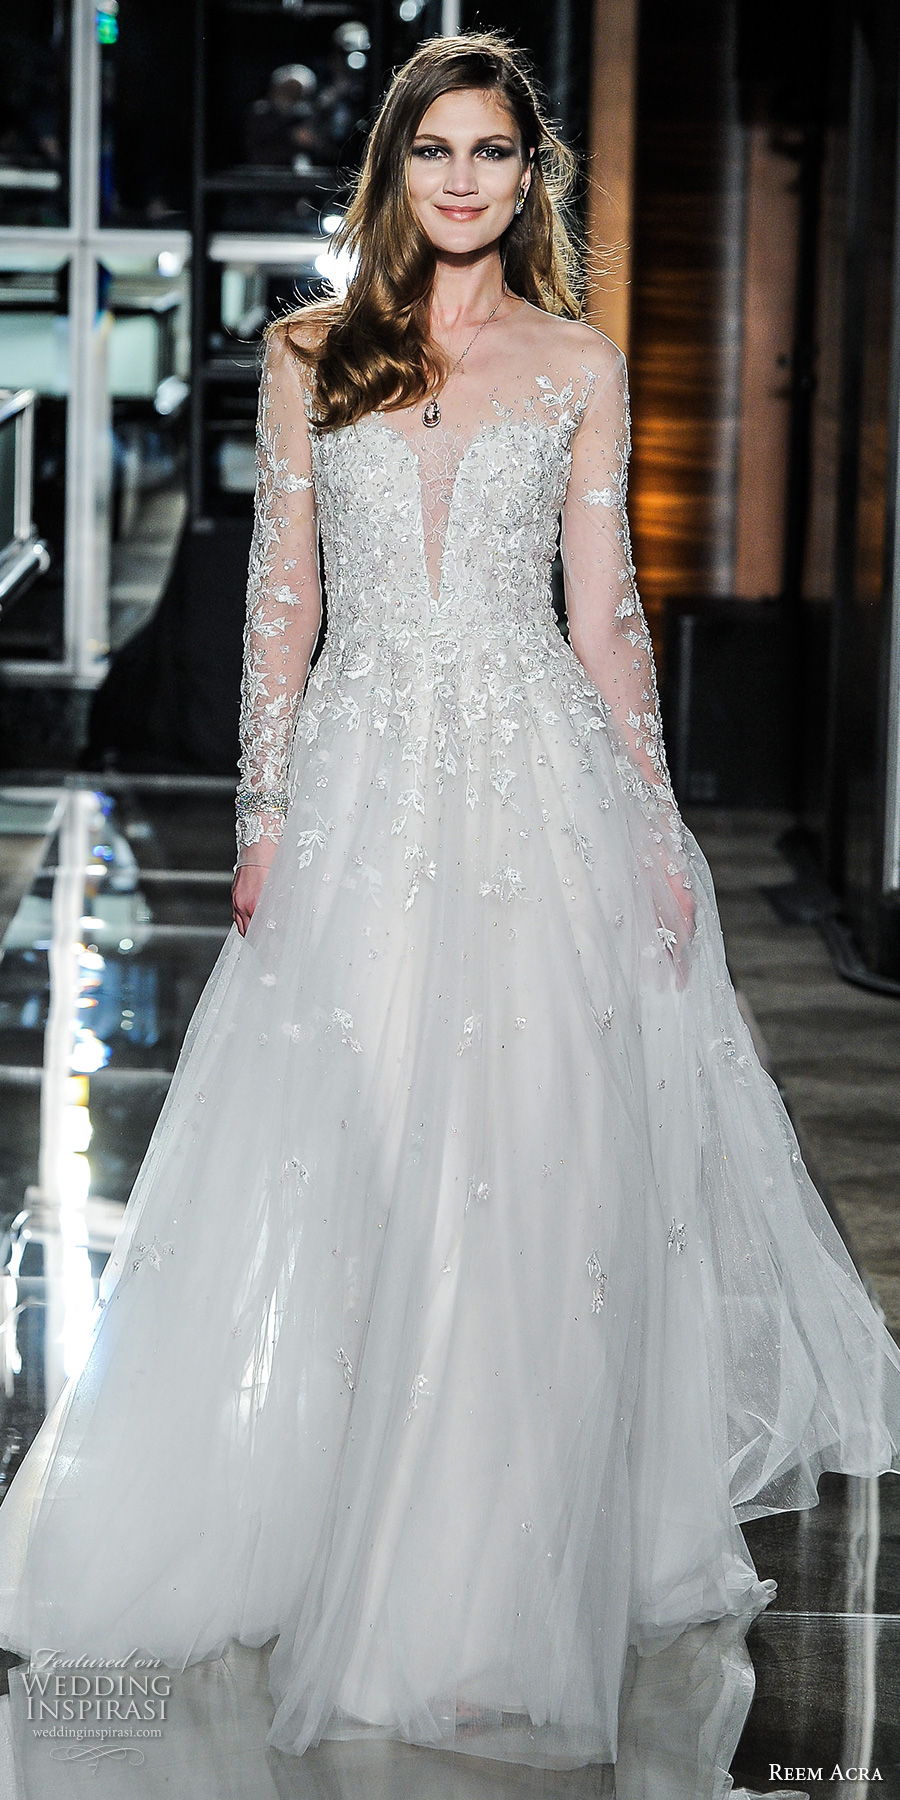 reem acra spring 2018 bridal long sleeves illusion jewel deep plunging sweetheart neckline heavily embellished bodice flowy skirt romantic a  line wedding dress short train (16secretgarden) mv